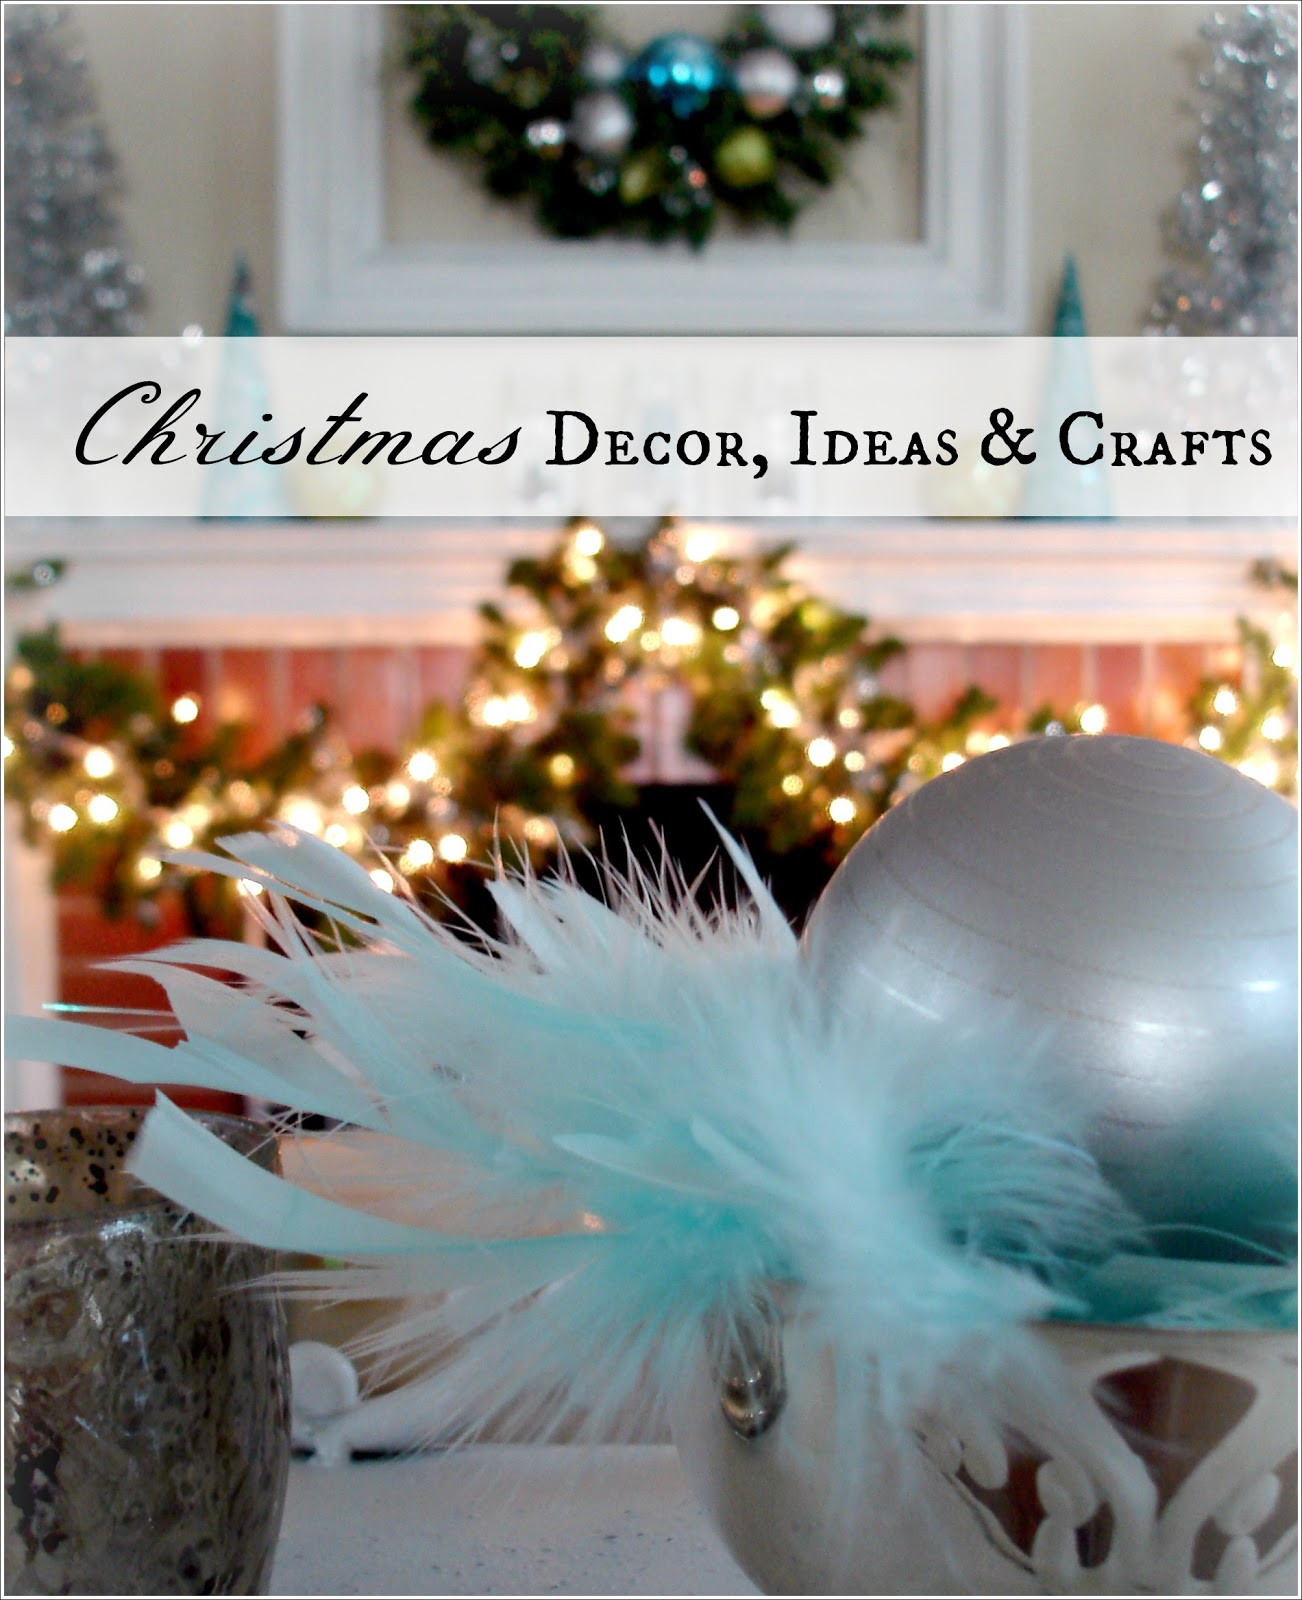 Decorating With Thrift Store Finds {Christmas Edition